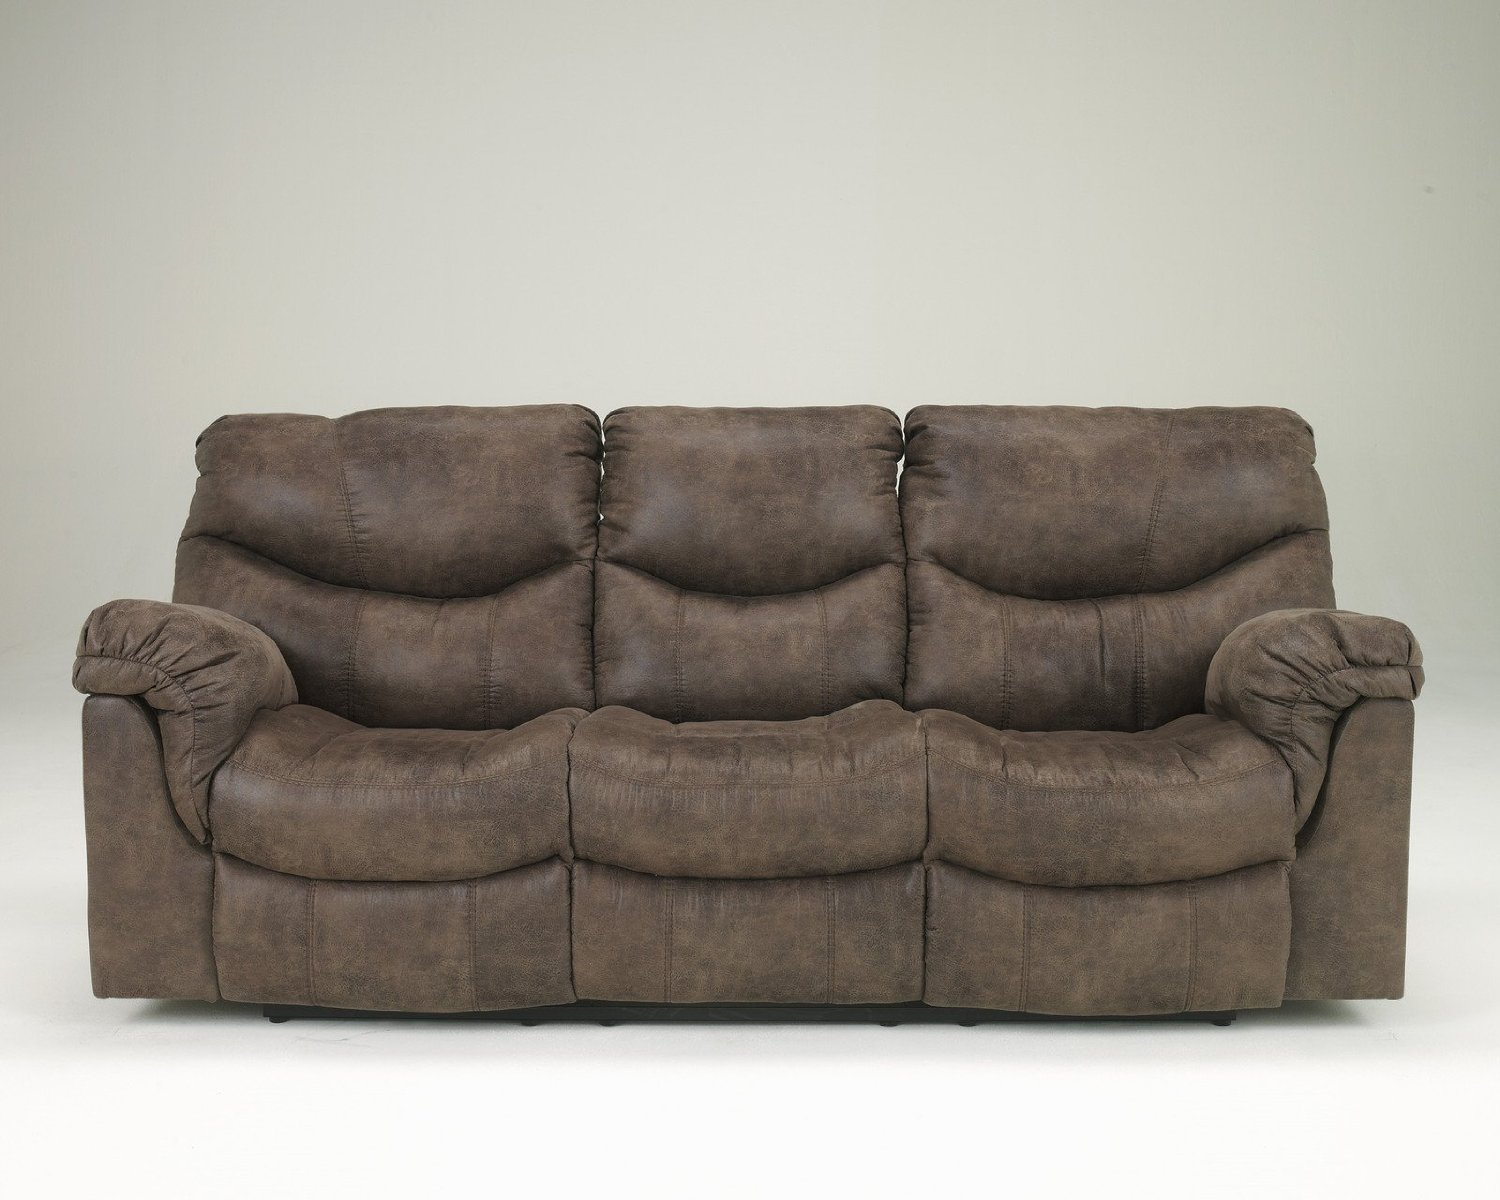 The Best Home Furnishings Reclining Sofa Reviews: Ashley